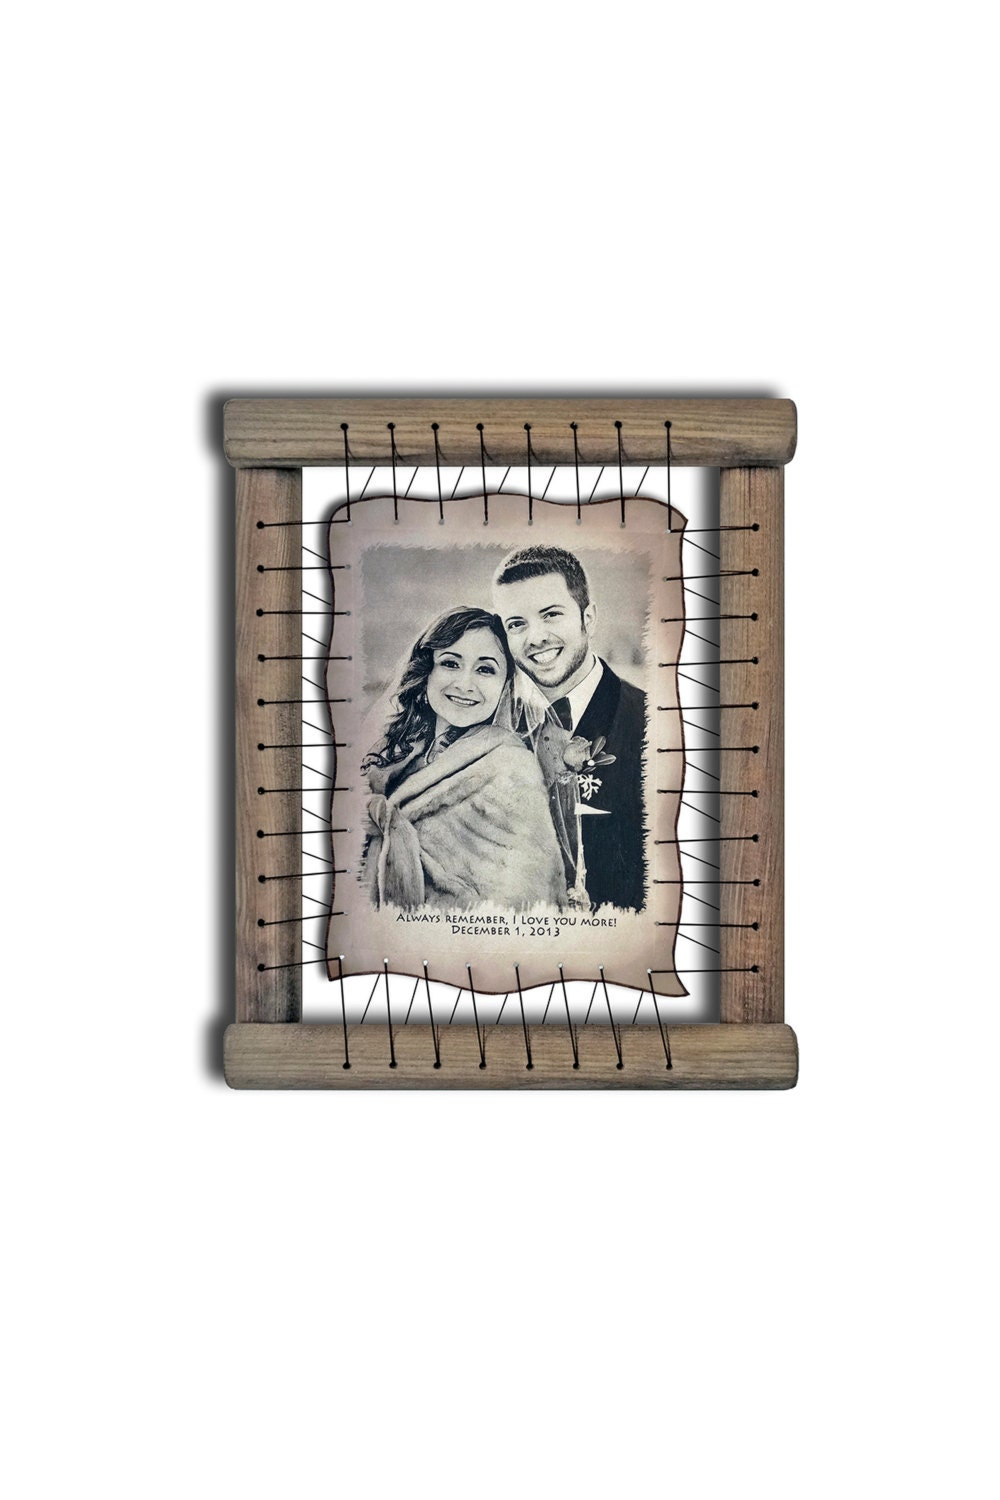 16th Wedding Anniversary Gift Ideas For Her: Paper Wedding Anniversary Gift Ideas For Her For Him For